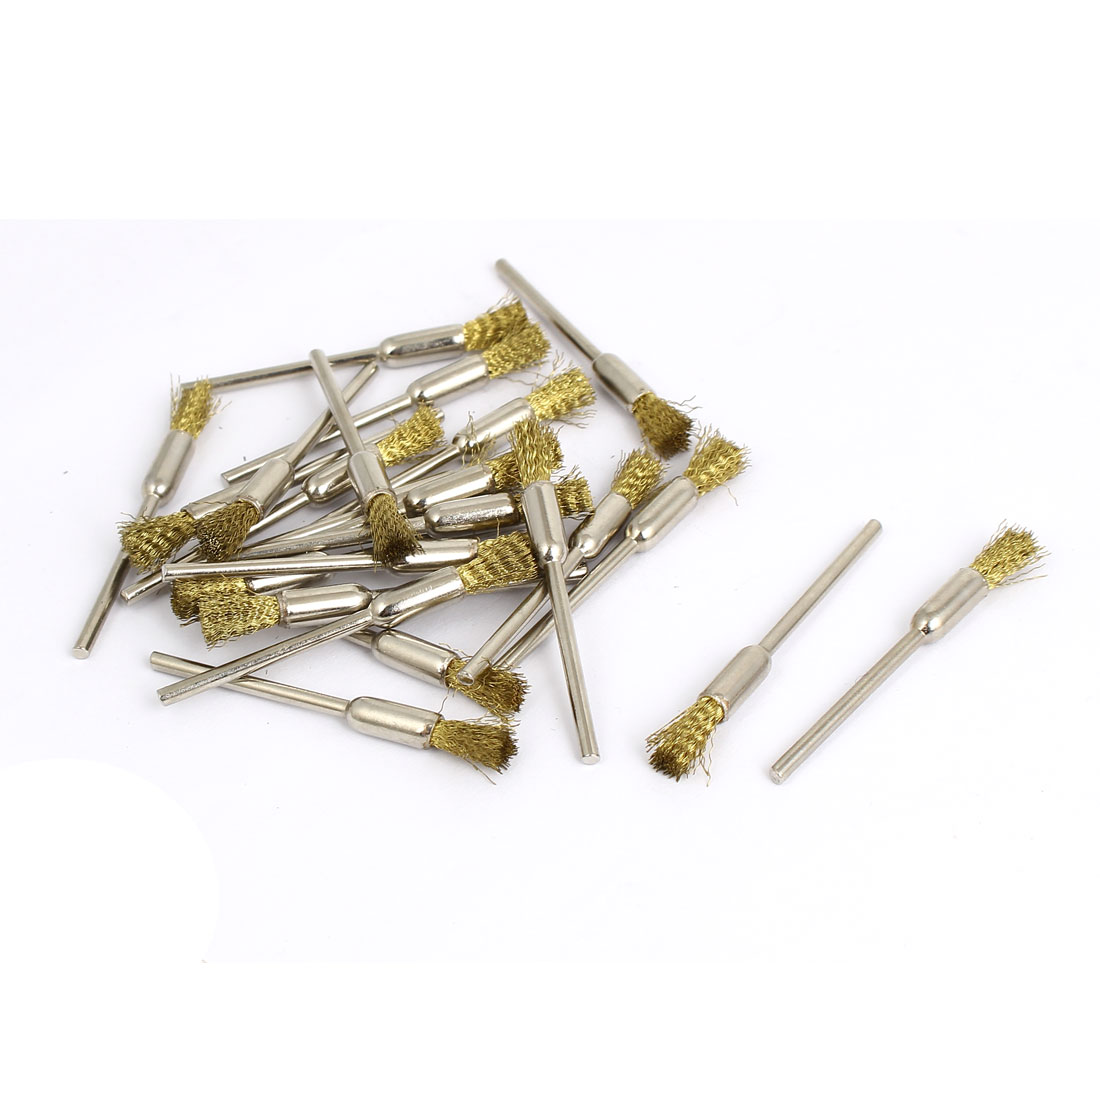 2.3mm Shank Wire Wheel Cup Brushes 23 Pcs for Rotary Drill Tool Polishing